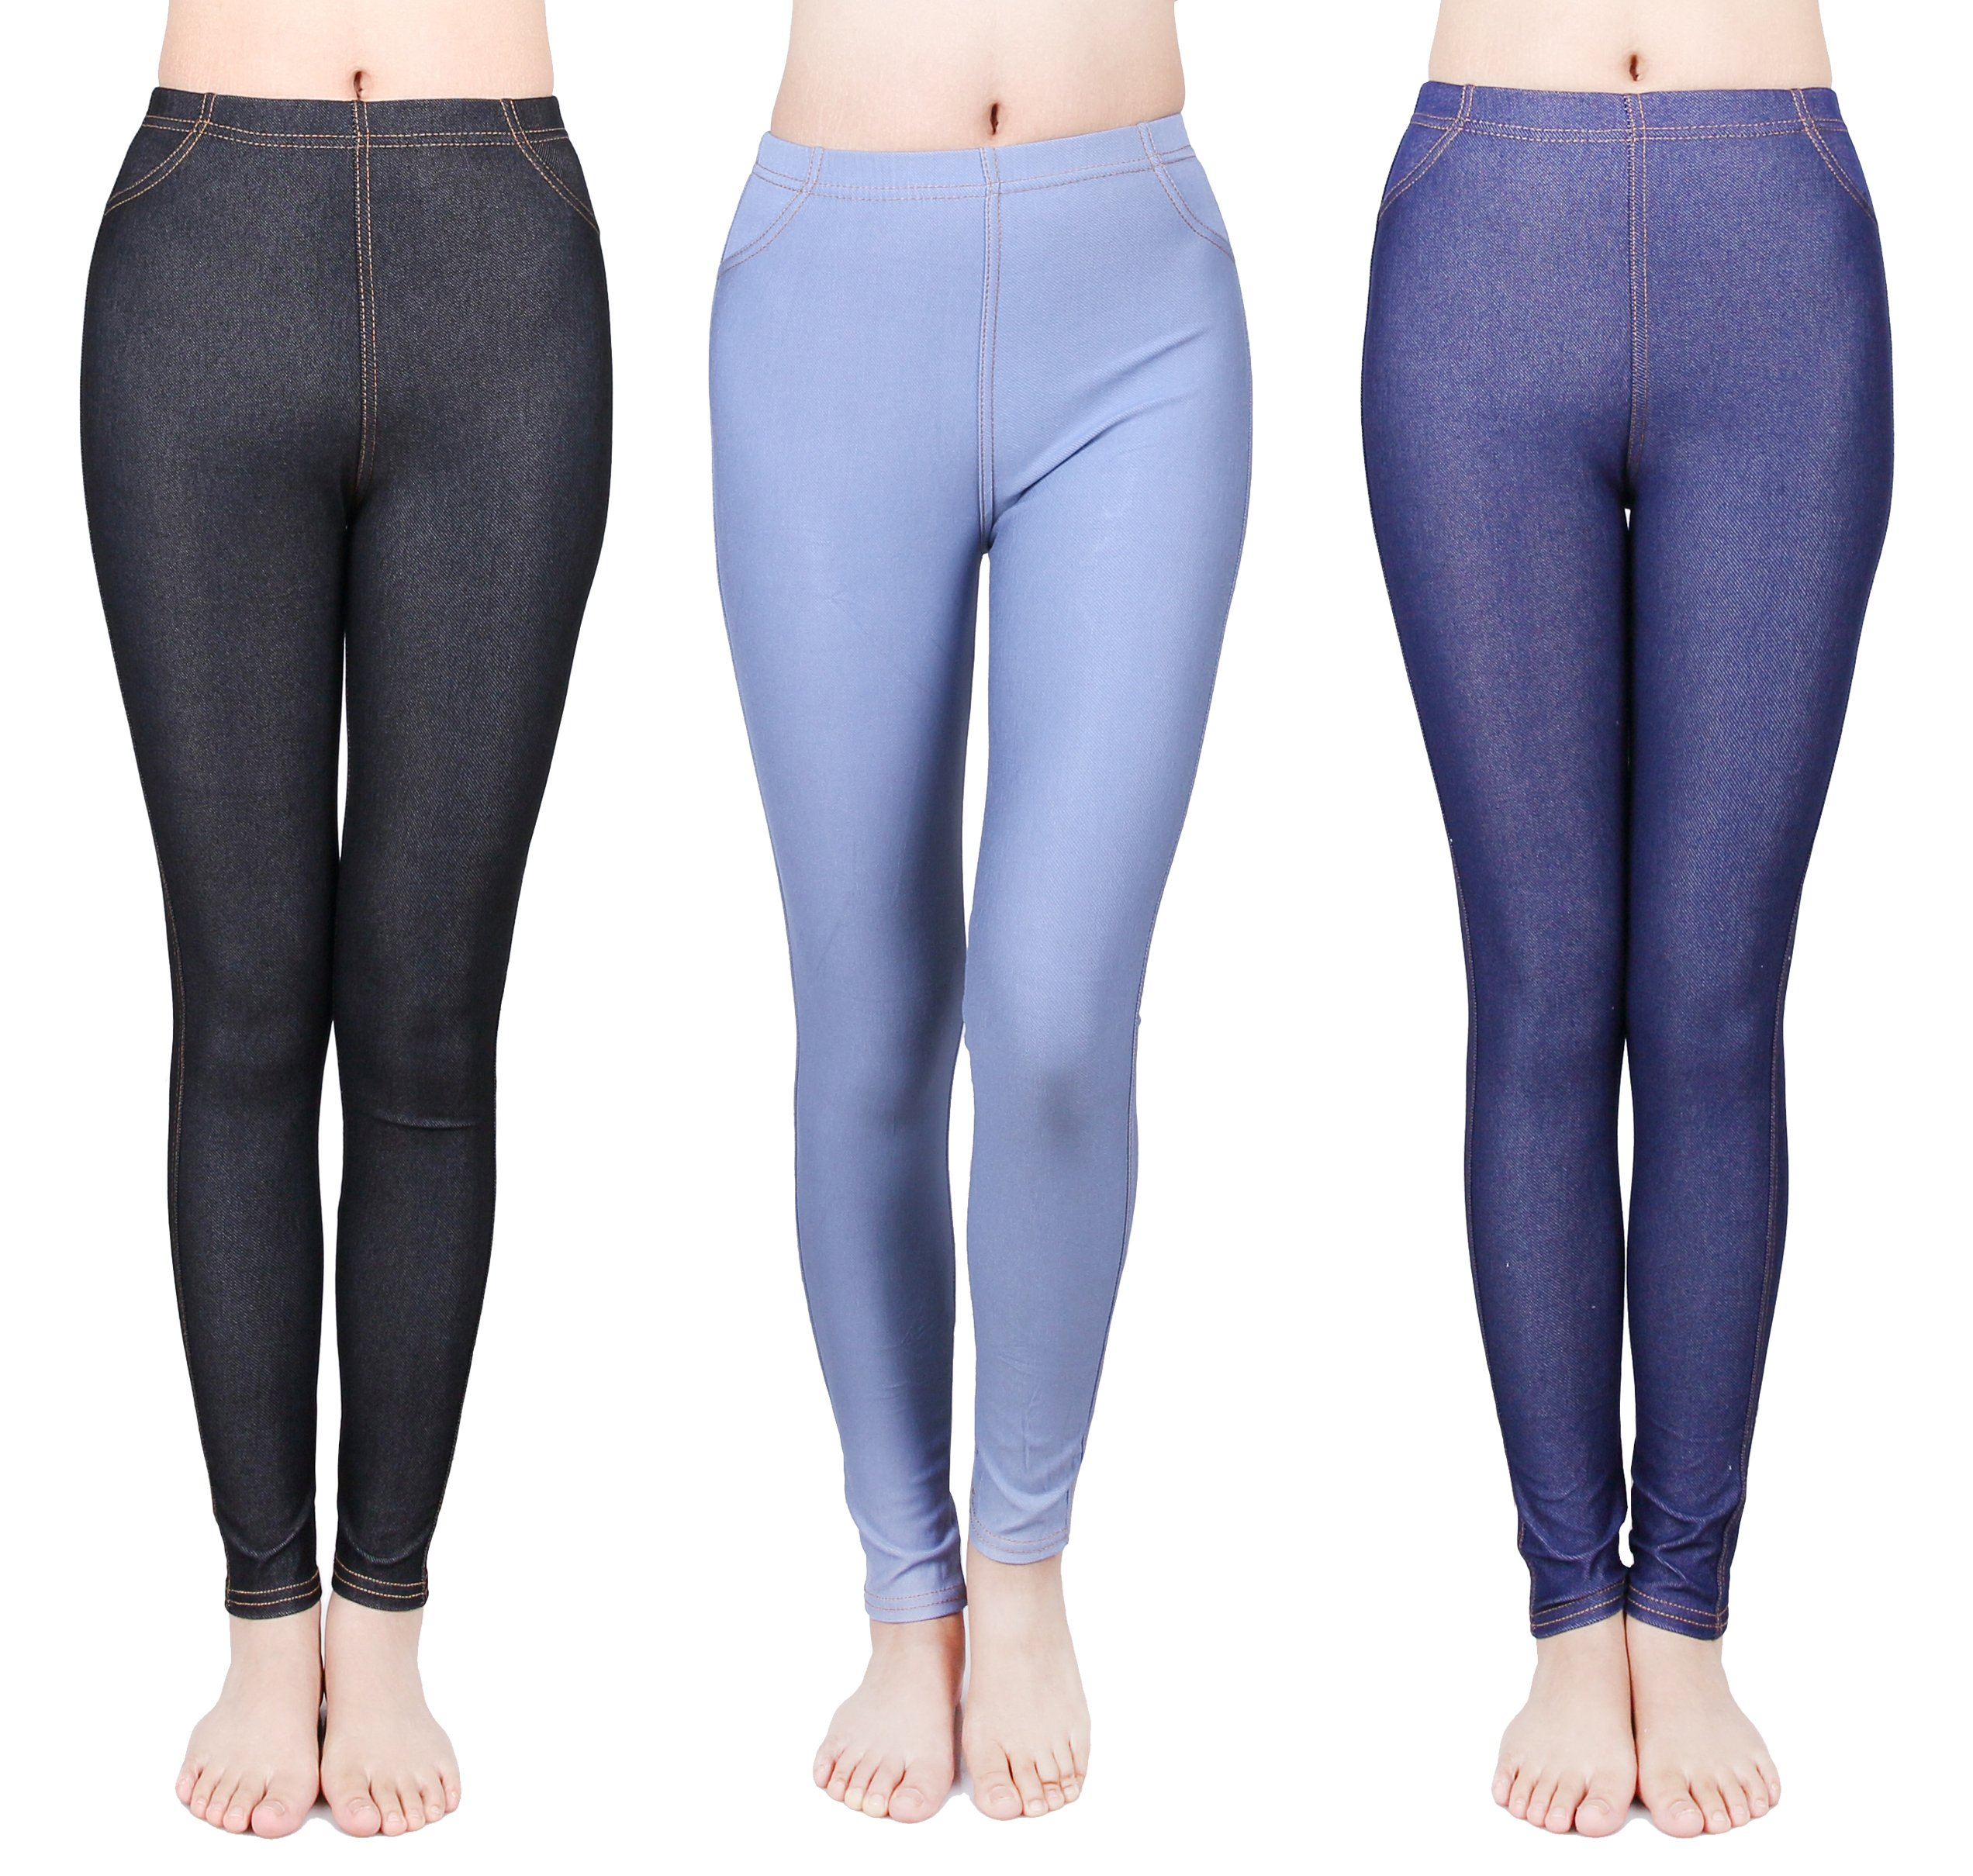 IRELIA 3 Pack Girls Jeggings Flexible Stretchy Jeans Leggings Size 4-12 01 M